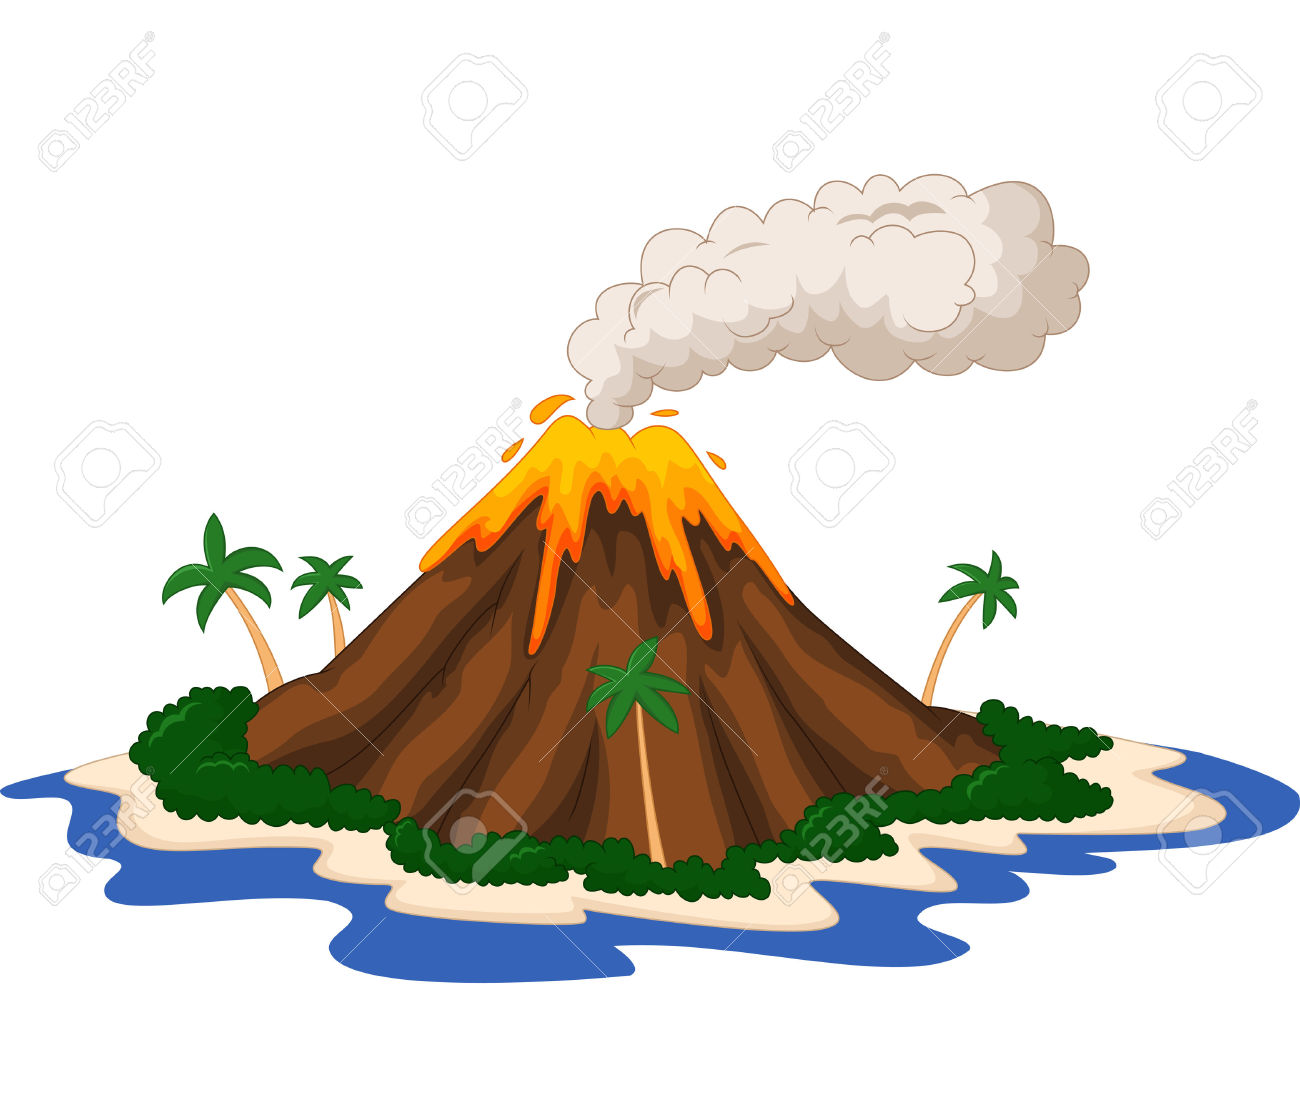 Volcano border clipart svg free stock Best Volcano Clipart #5075 - Clipartion.com svg free stock